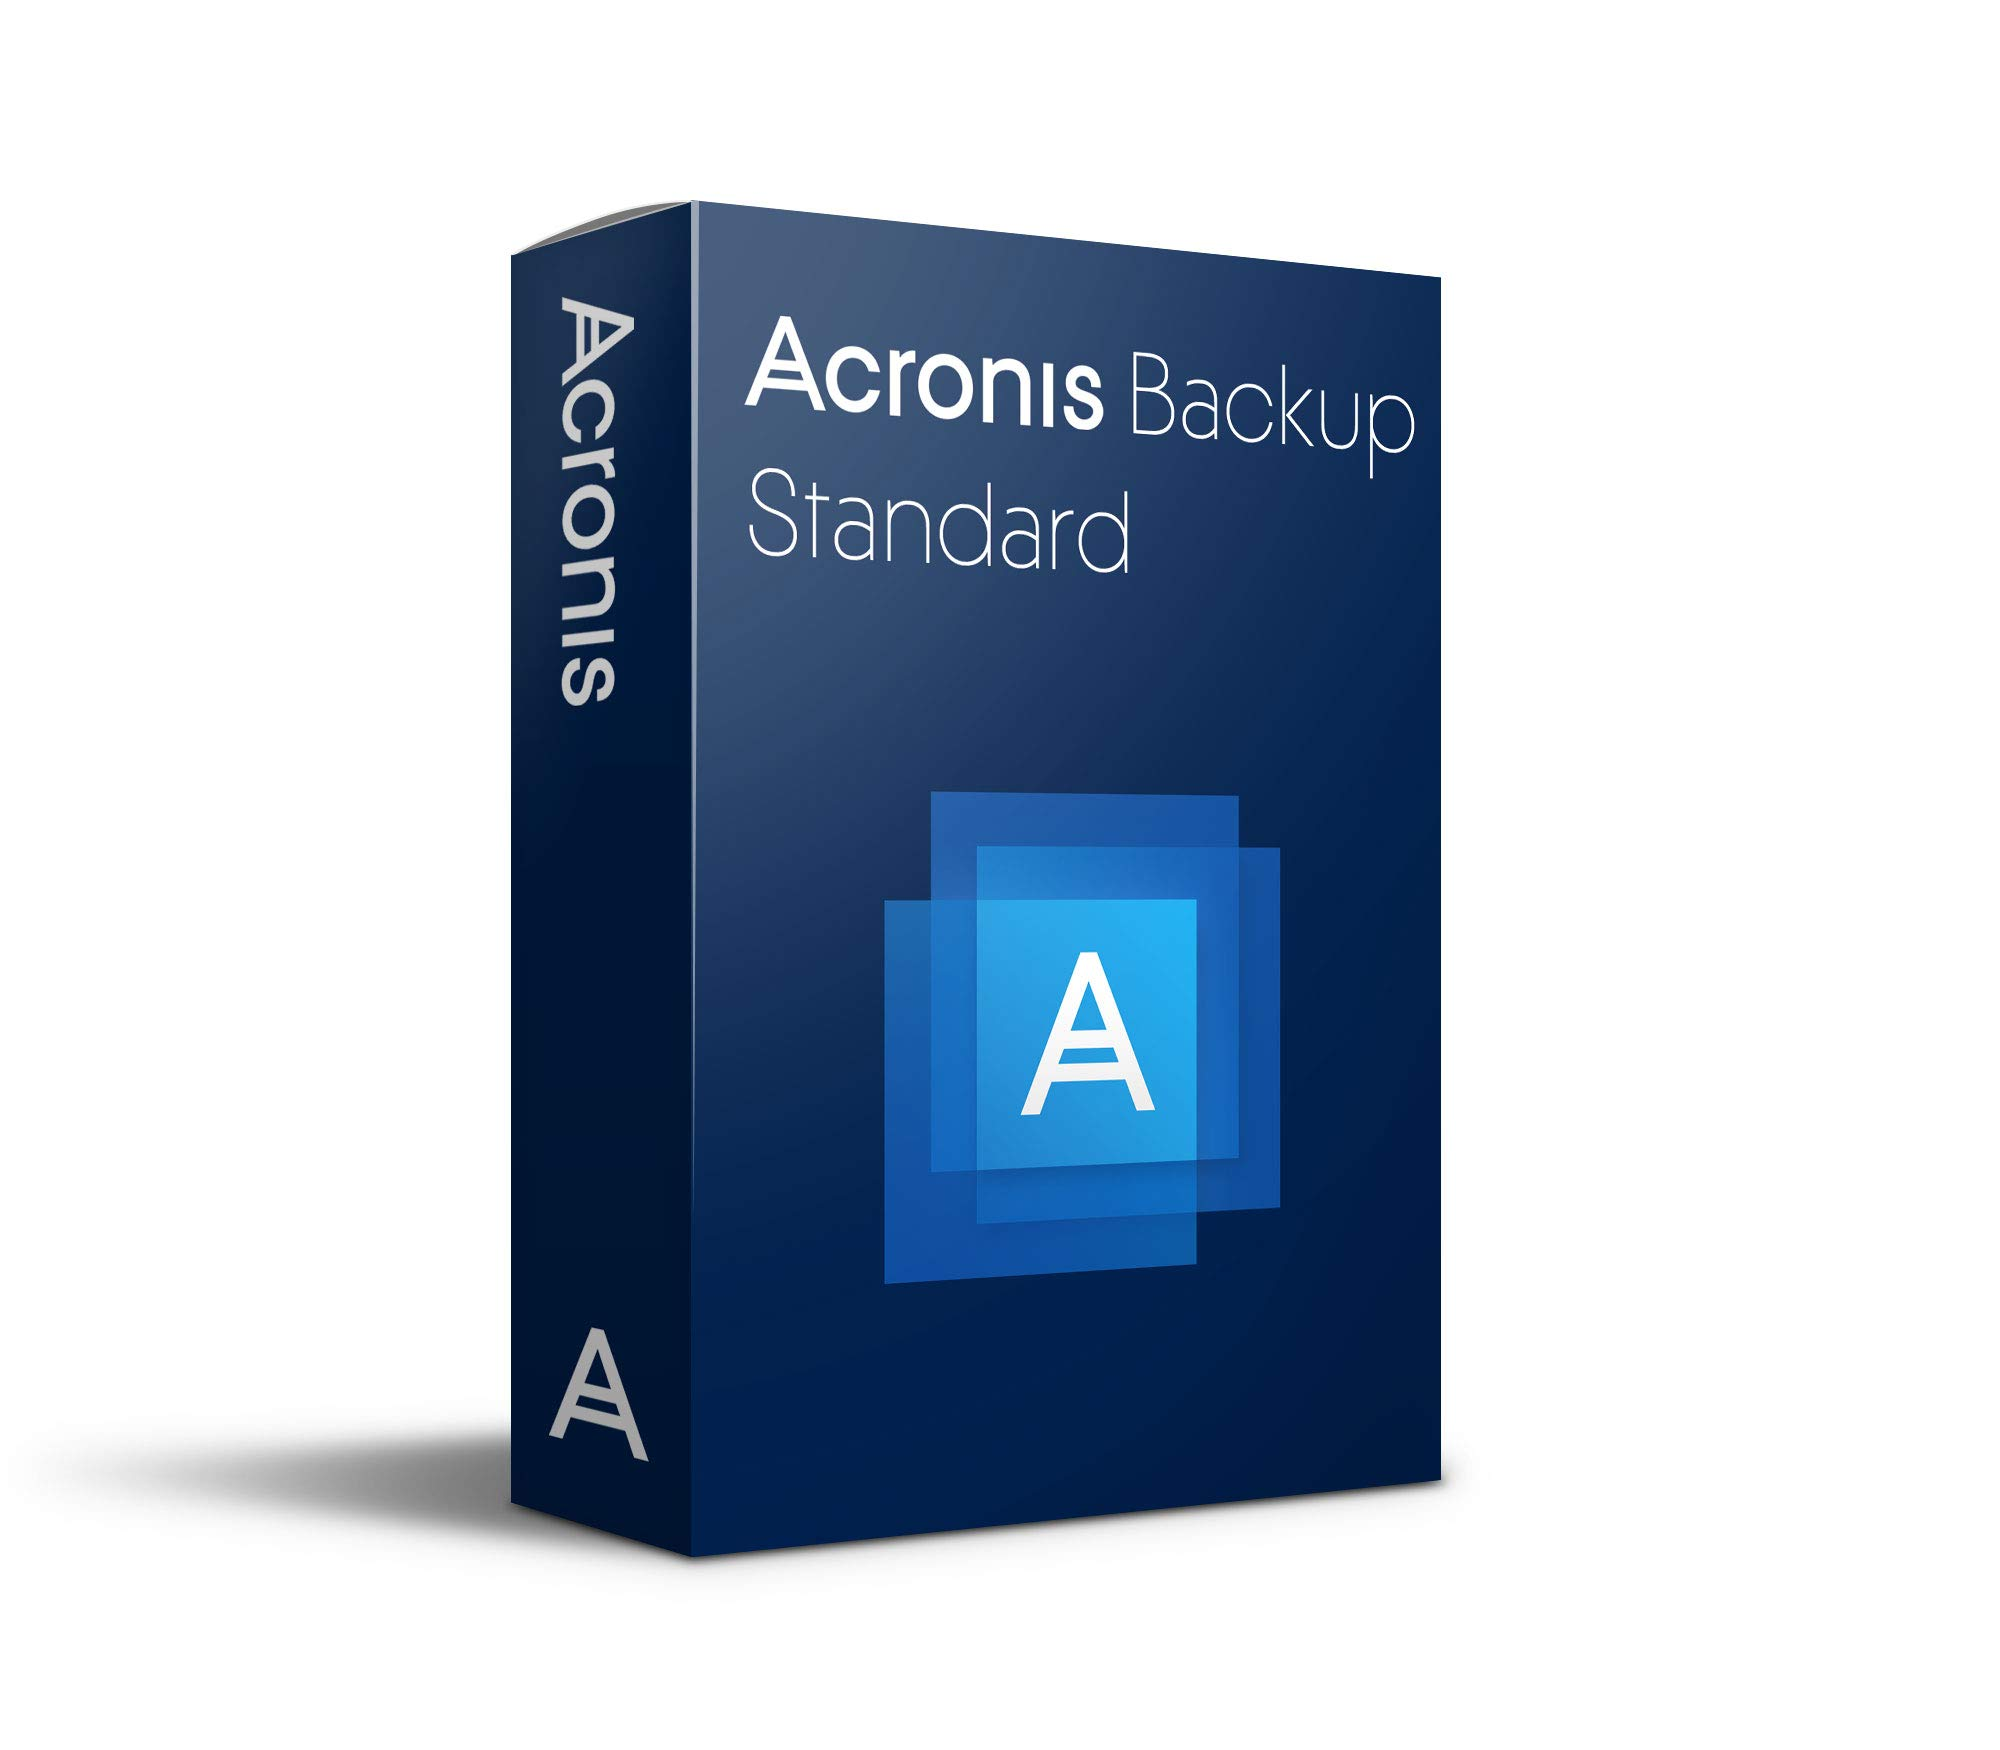 Acronis | G1EBEBLOS11 | Backup Standard Windows Server Essentials Subscription License, 1 Year by Acronis